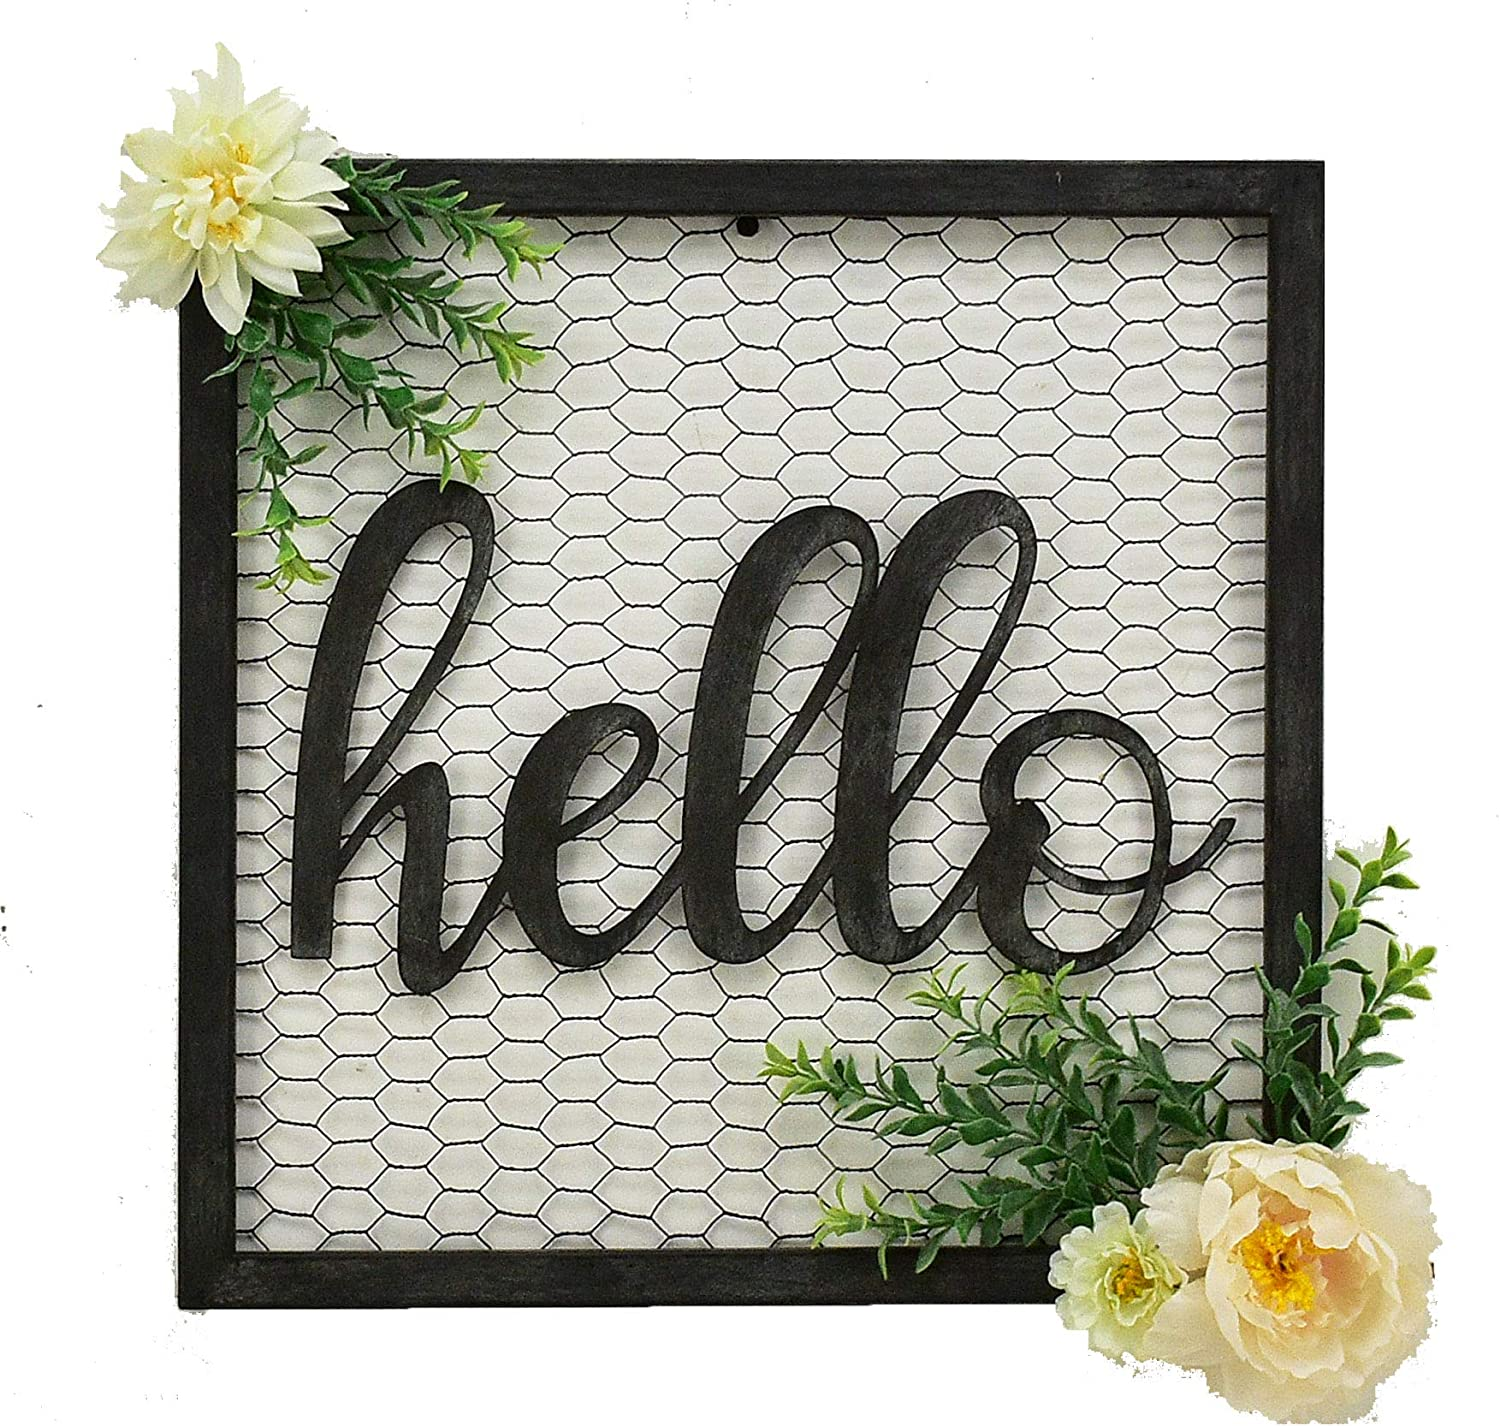 Parisloft Hello Script Metal Sign Decor Wall Art for Gallery Wall or Front Door Entryway Square Metal Wall Hanging Art Sign 15.7 x 15.7 x 1.4 Inches Black